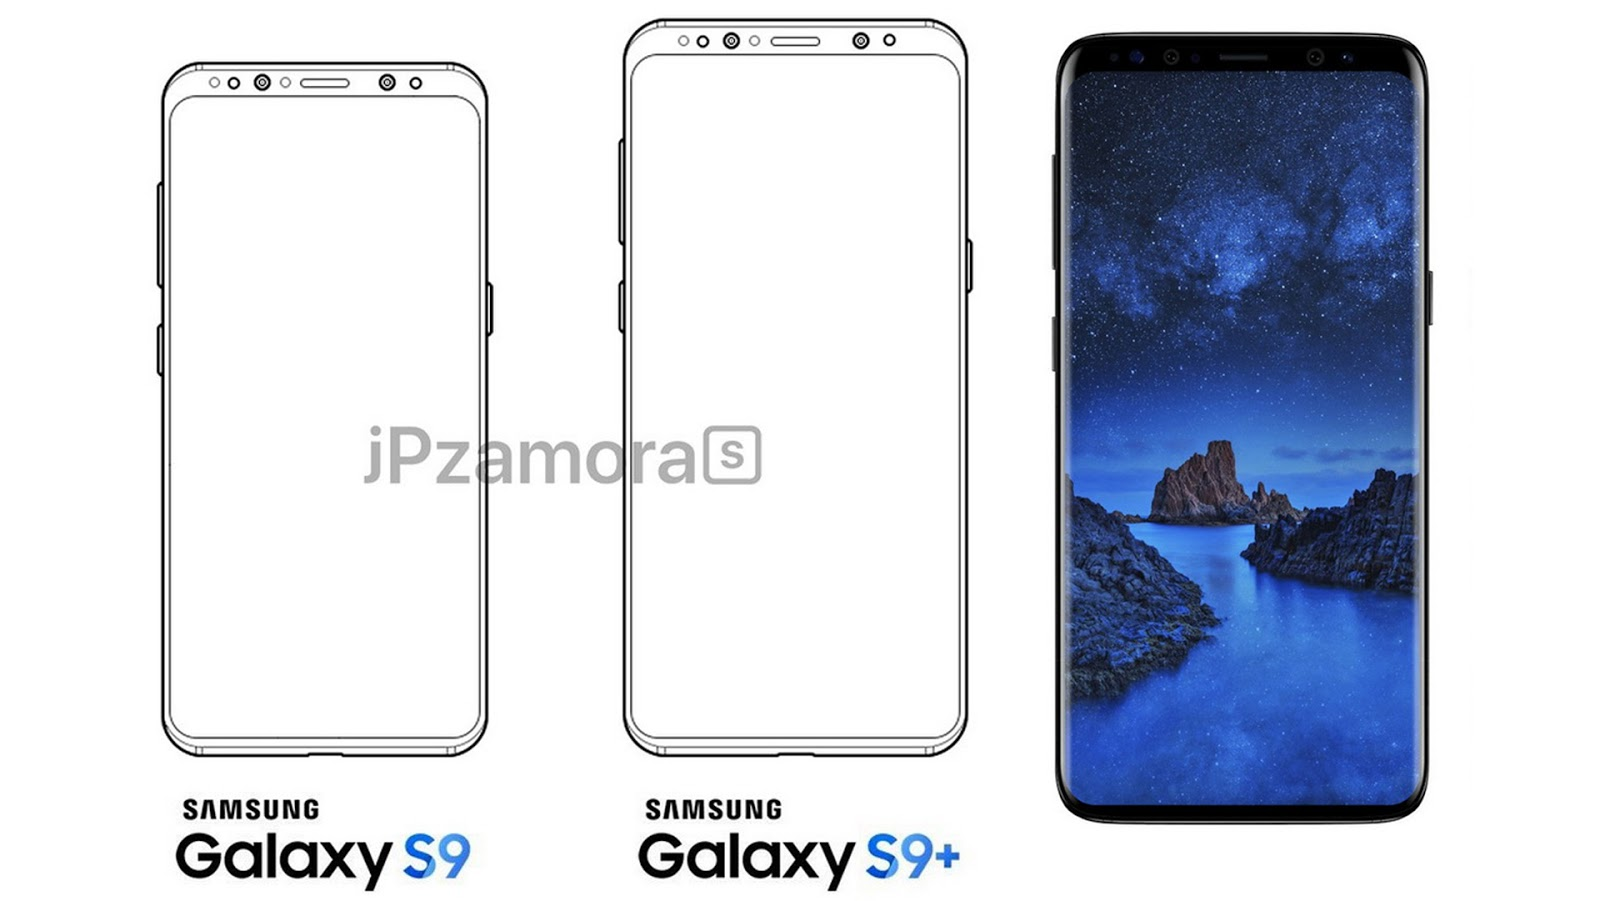 Samsung galaxy s9 and s9 plus sketch images